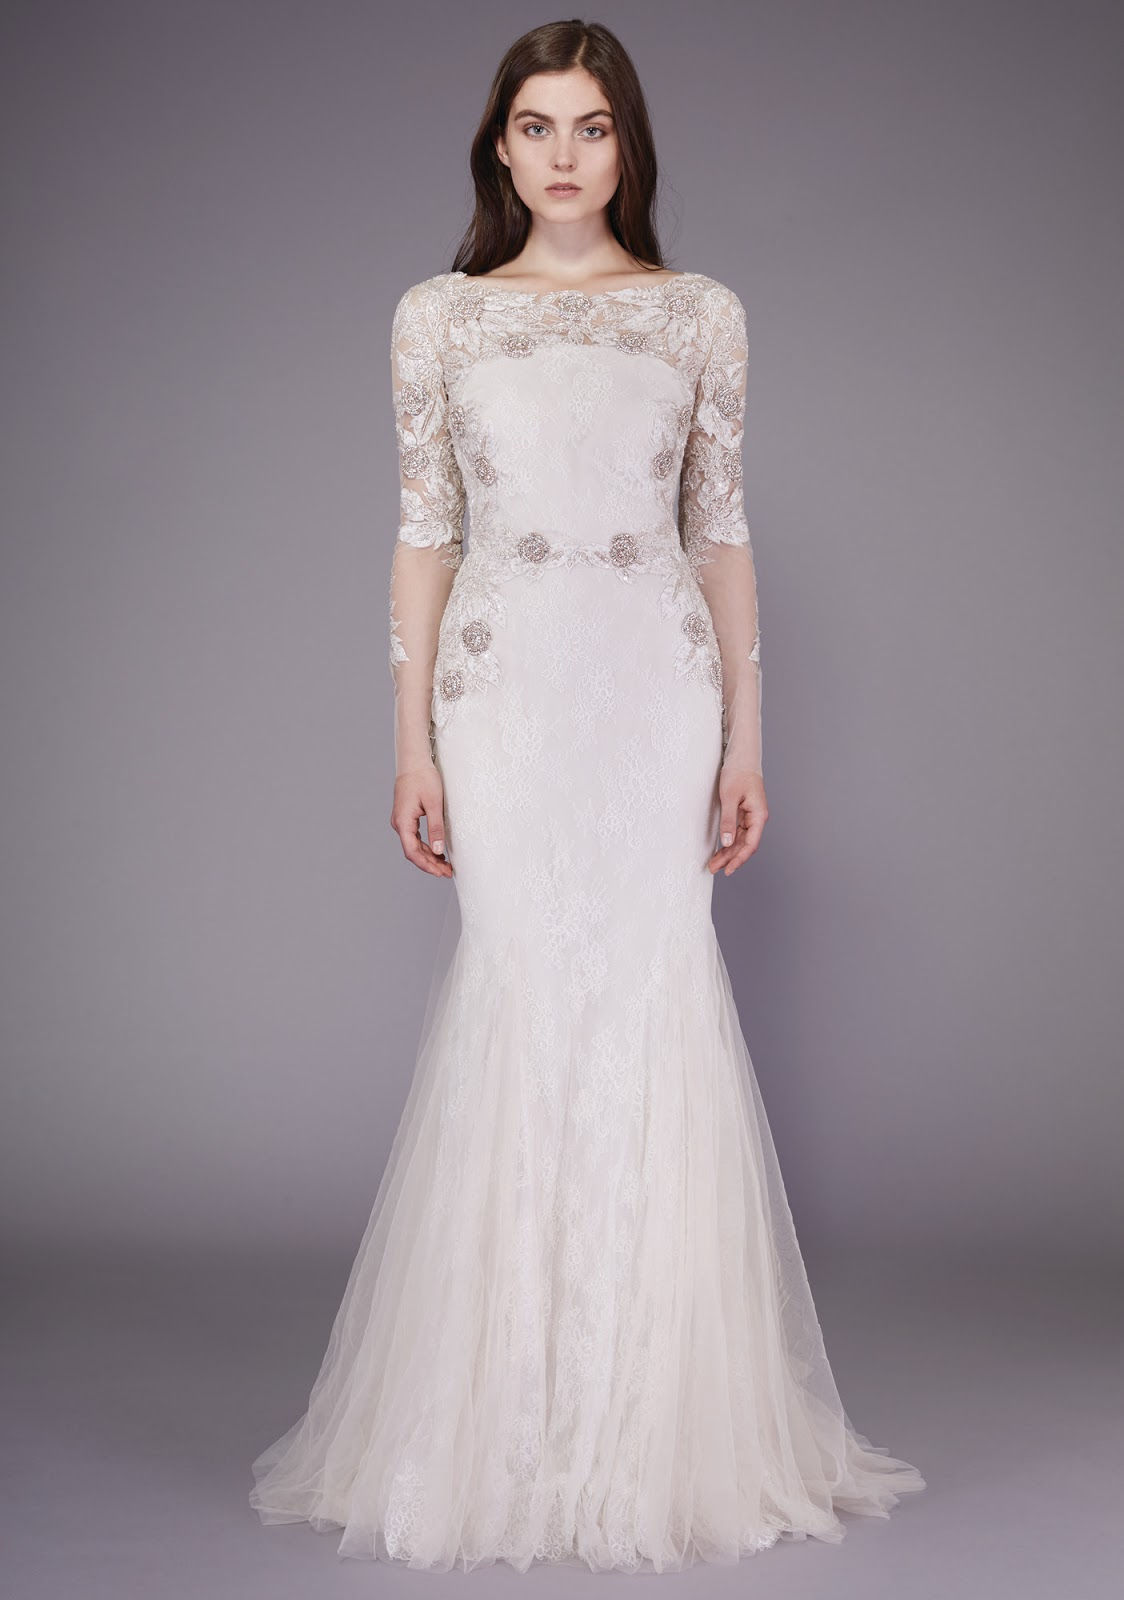 wedding dresses cold climates: Vogue Best Wedding Dresses 2015